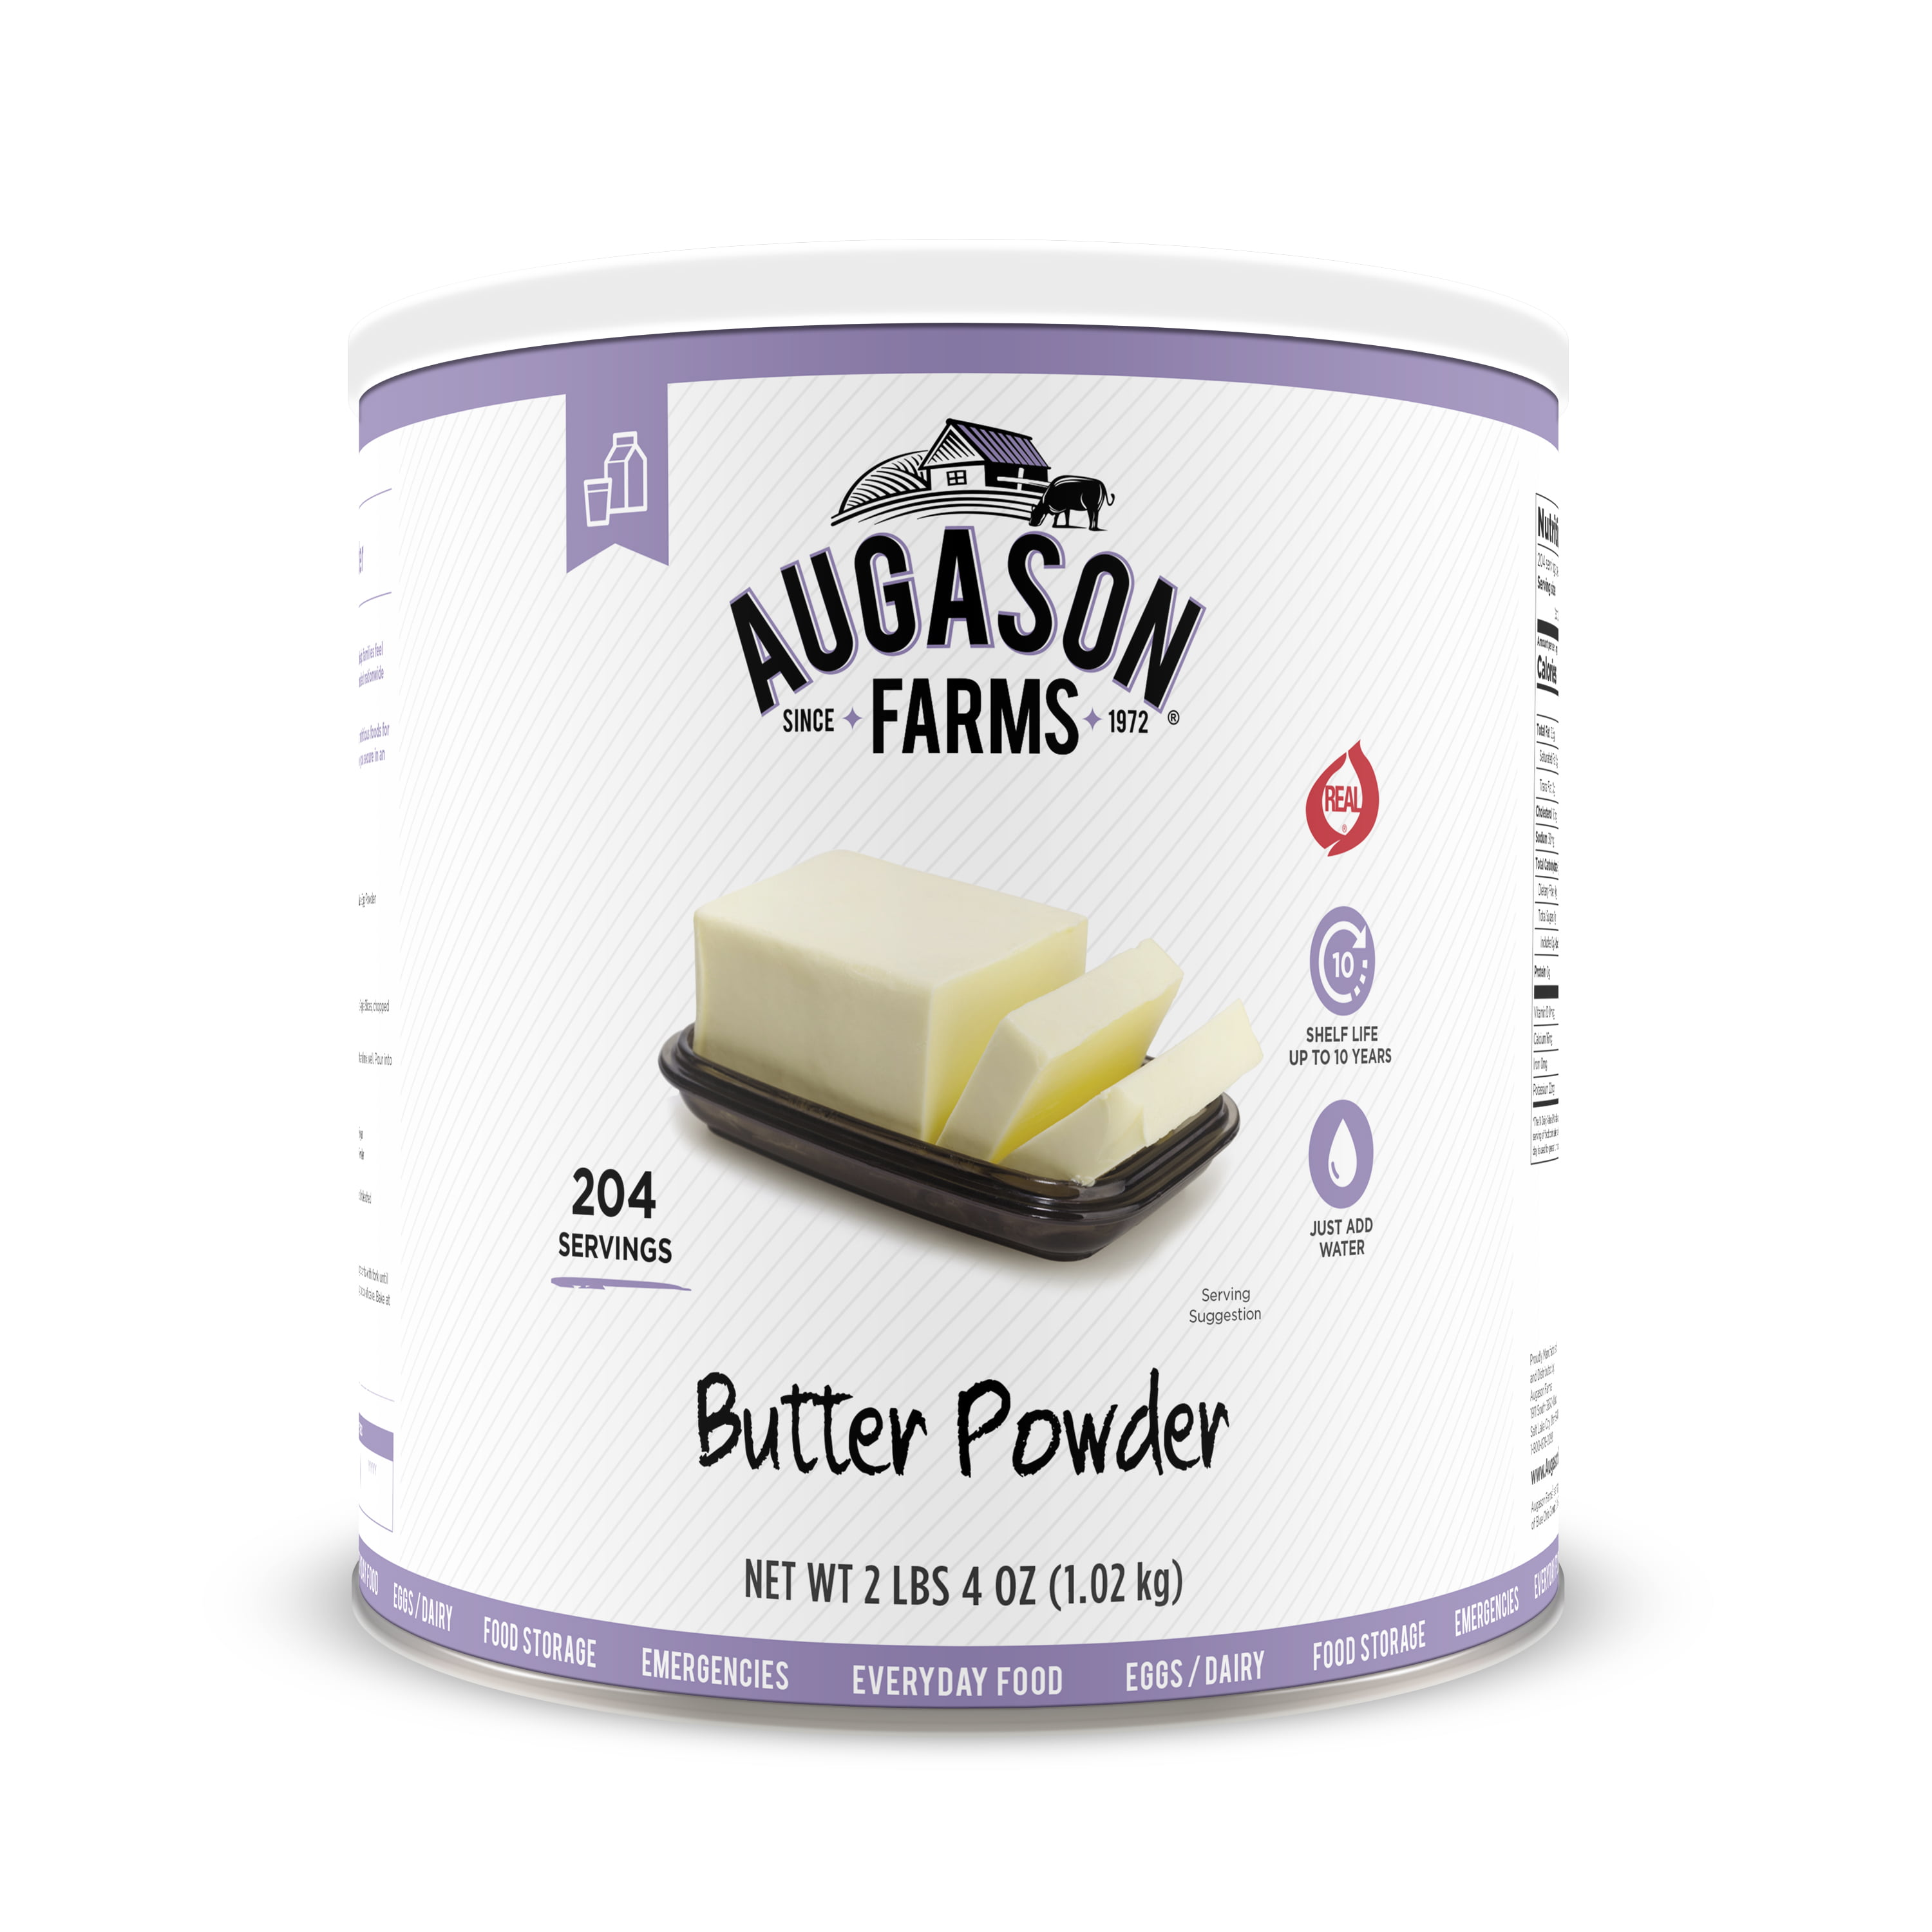 Augason Farms Butter Powder 2 lbs 4 oz No. 10 Can by Blue Chip Group